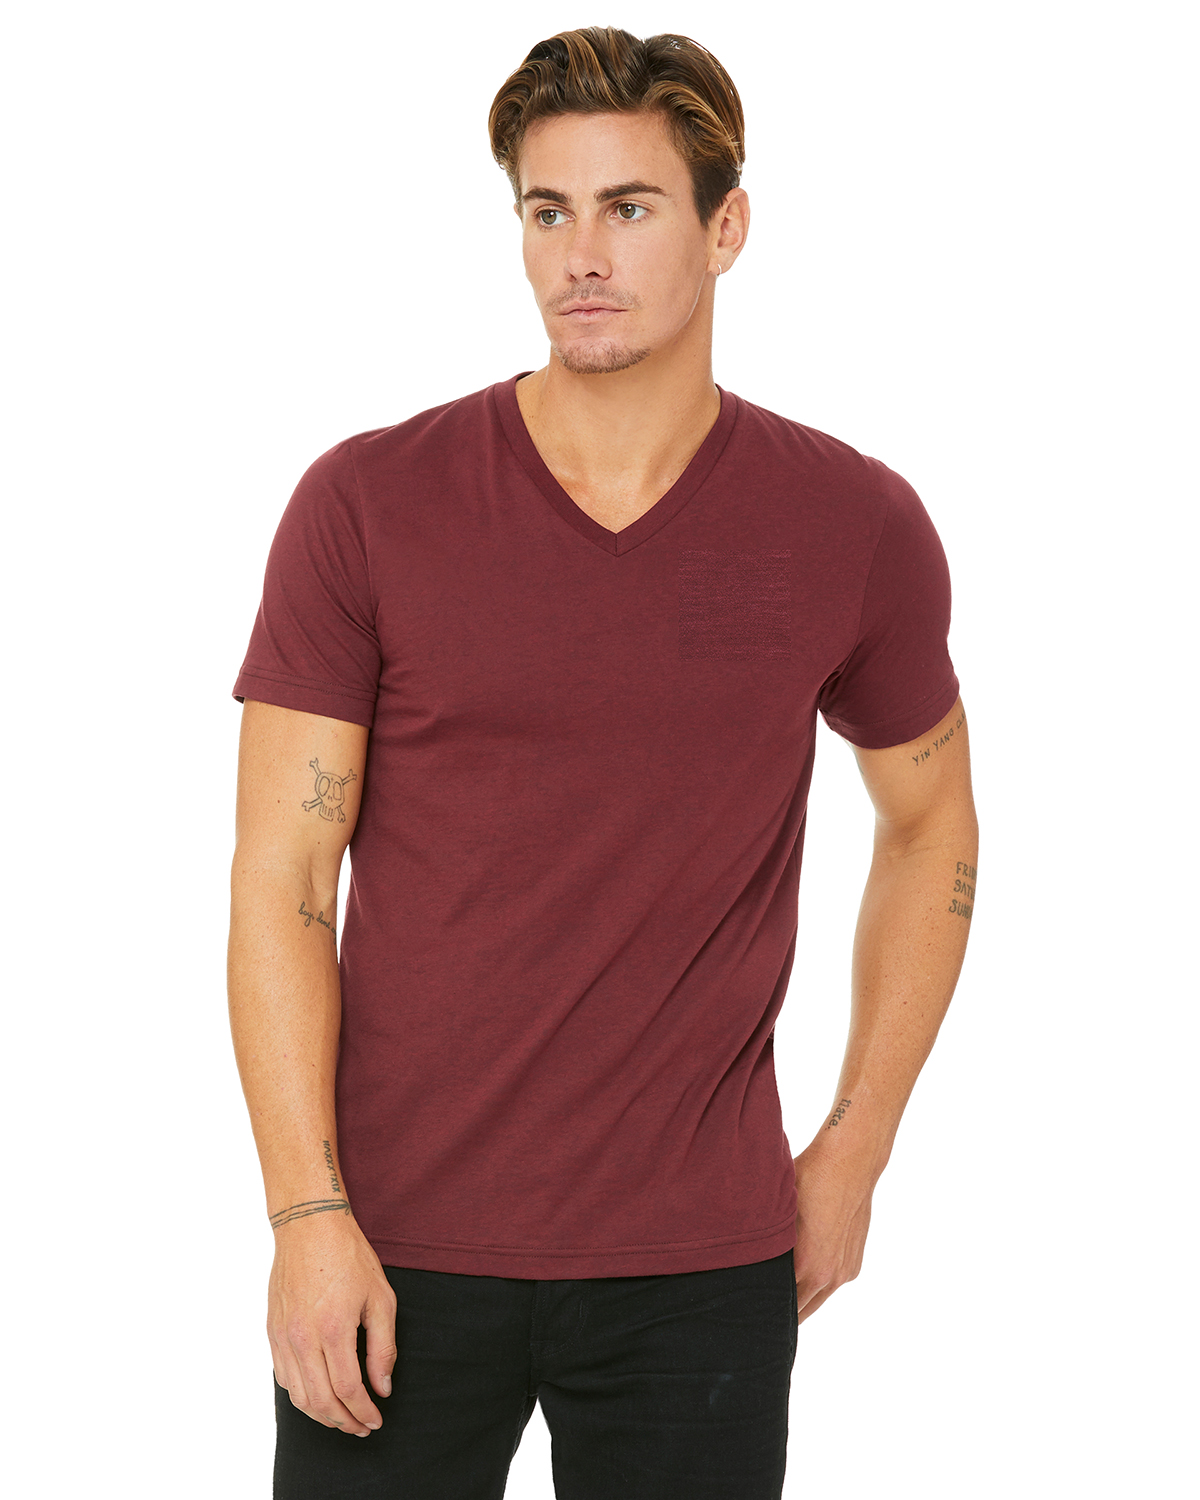 Bella C3415 - Unisex TriBlend Short-Sleeve Deep V-Neck Tee